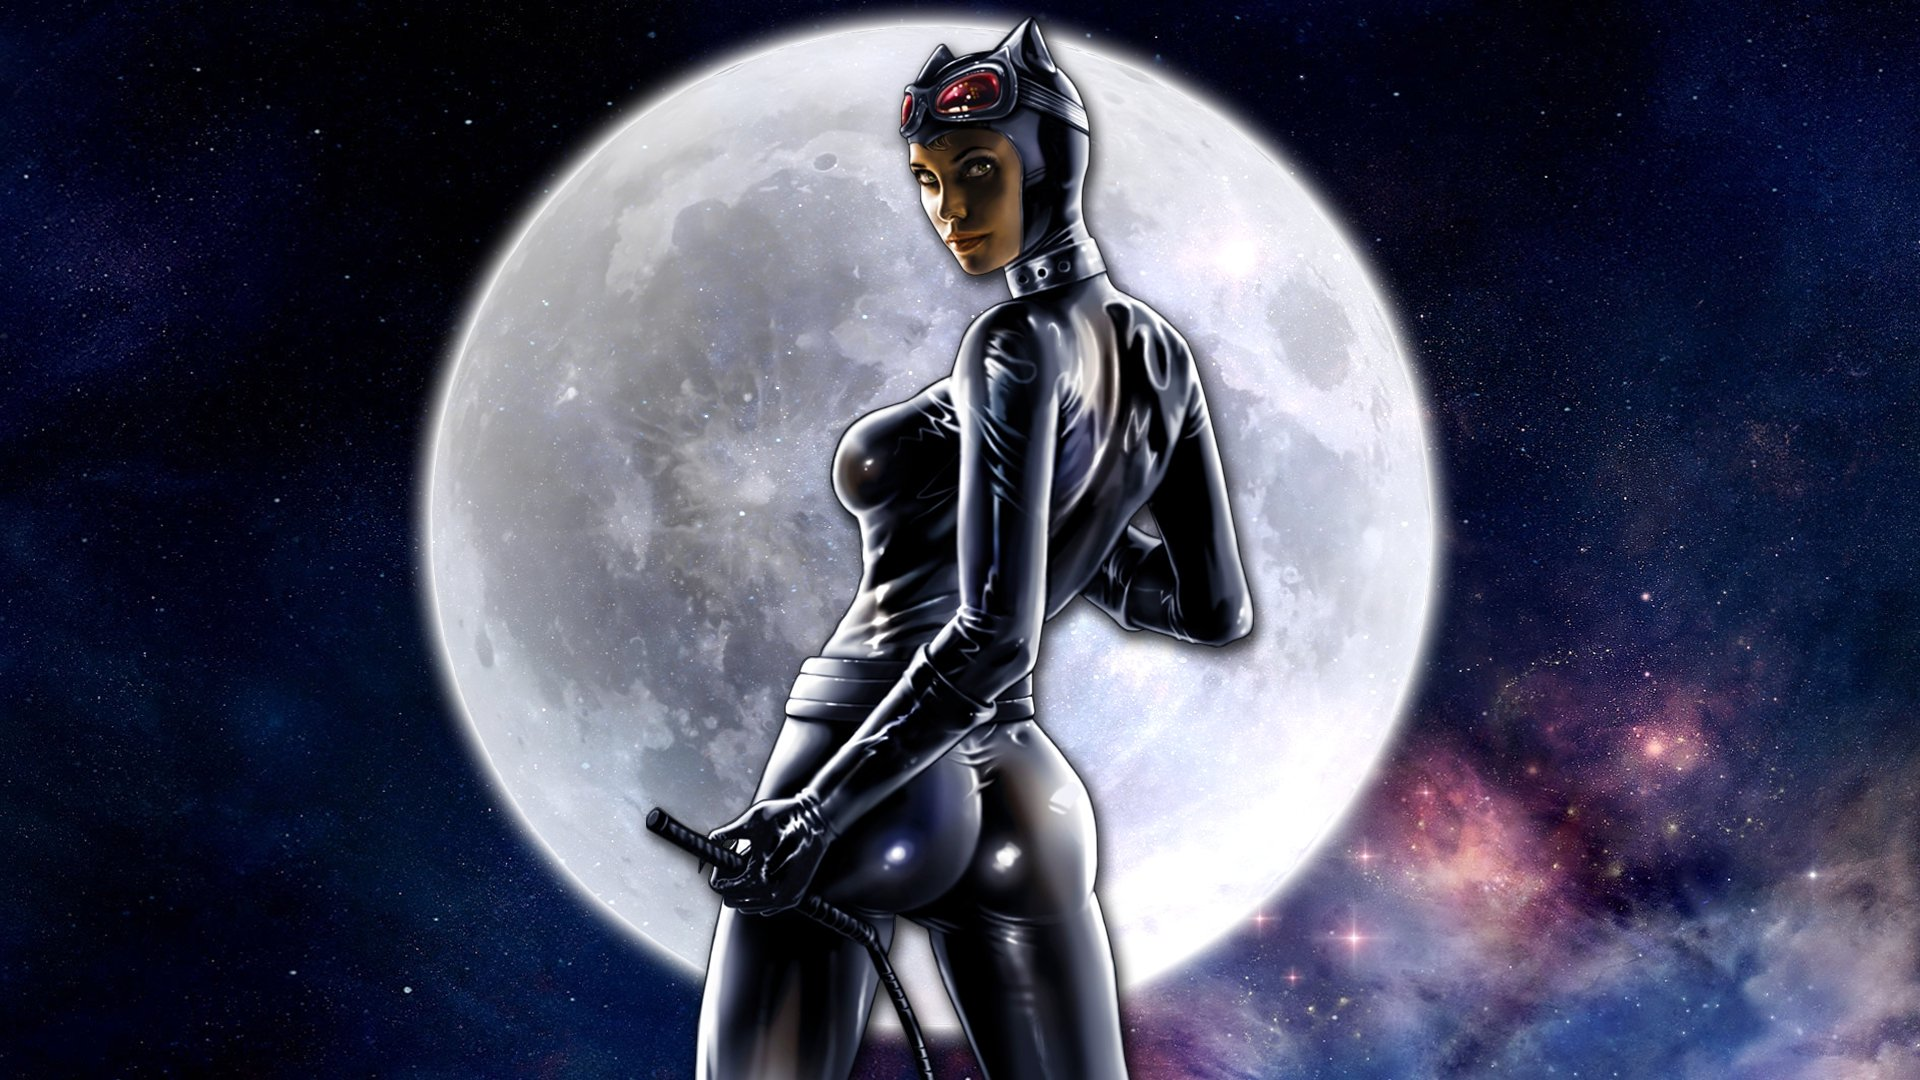 Catwoman HD Wallpapers for desktop download 1920x1080